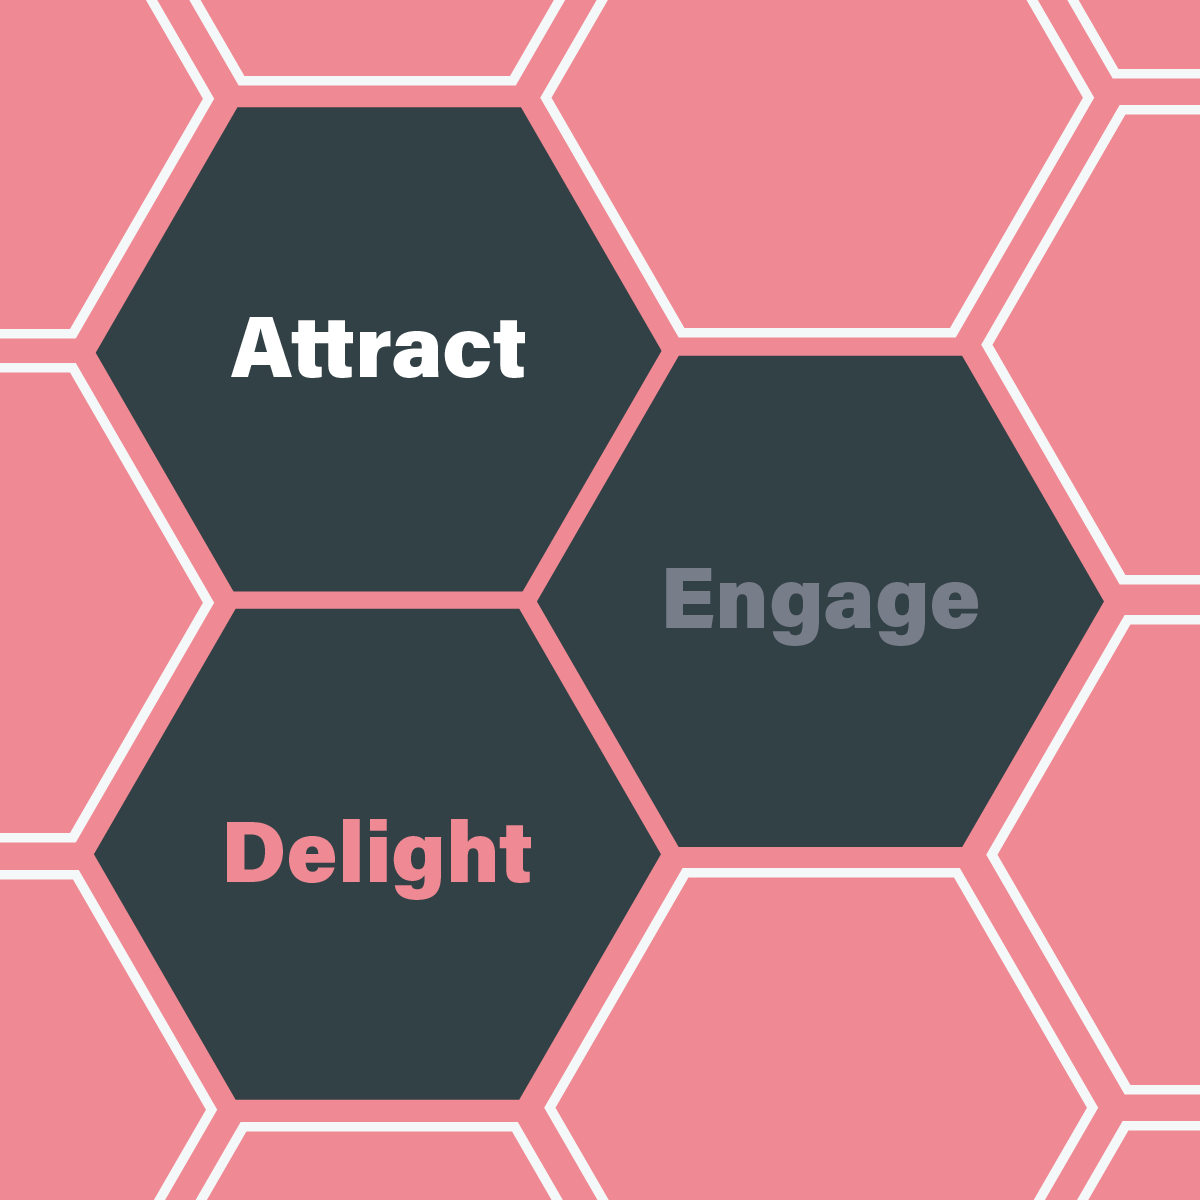 Attract, Engage, Delight